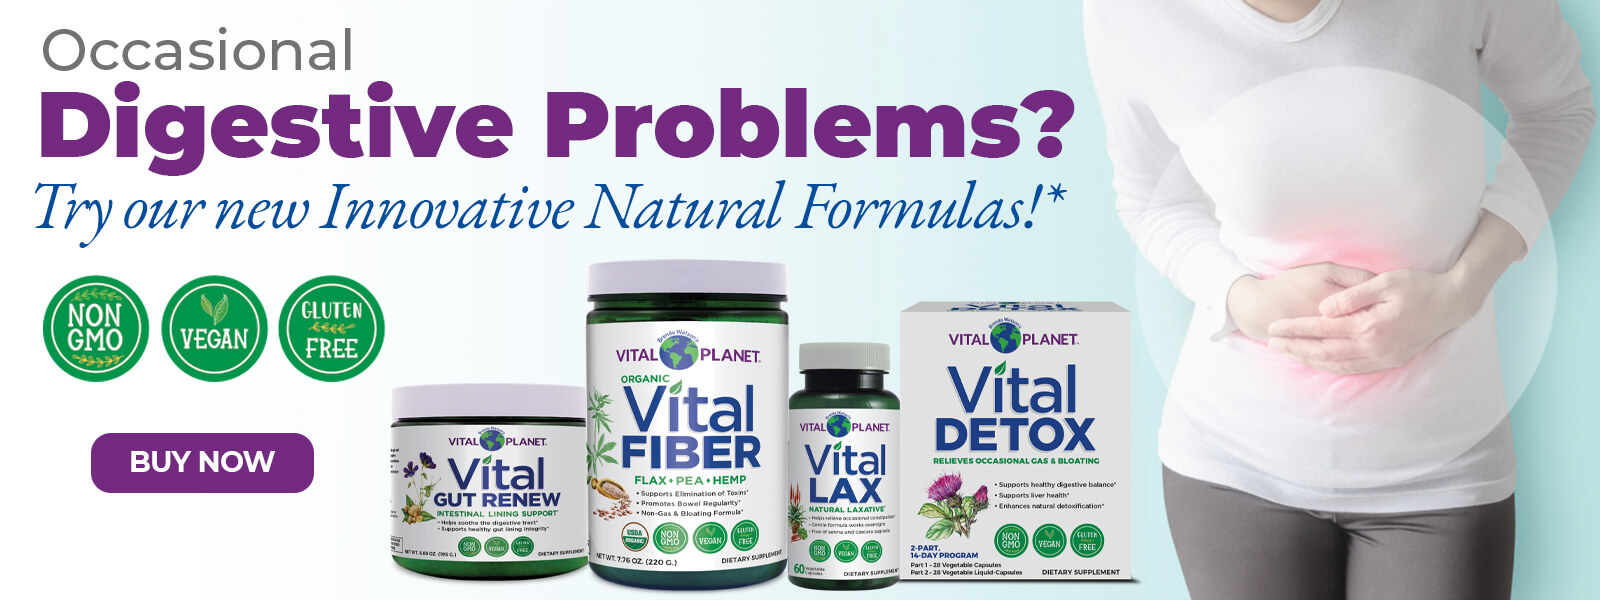 Occasional Digestive Problems? Try out new innovative natural formulas